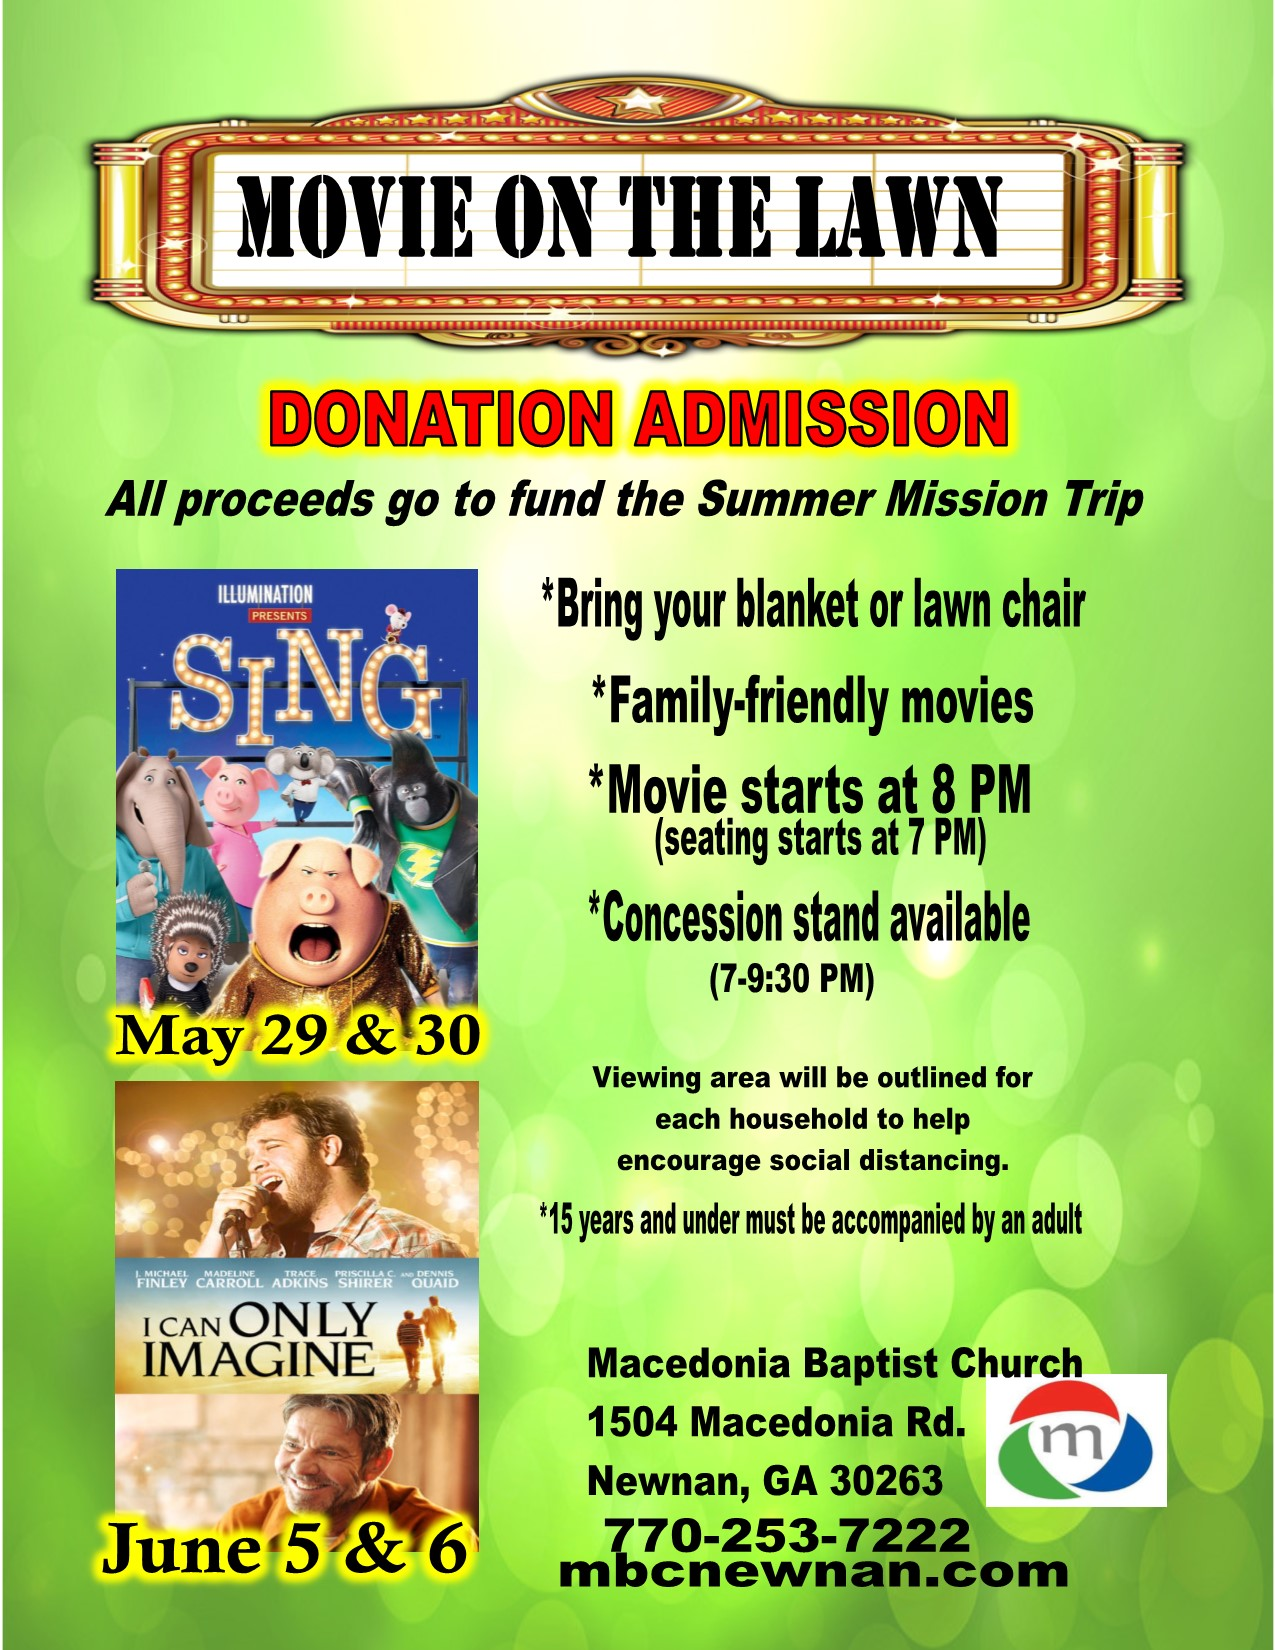 Movie on the Lawn - Fundraiser